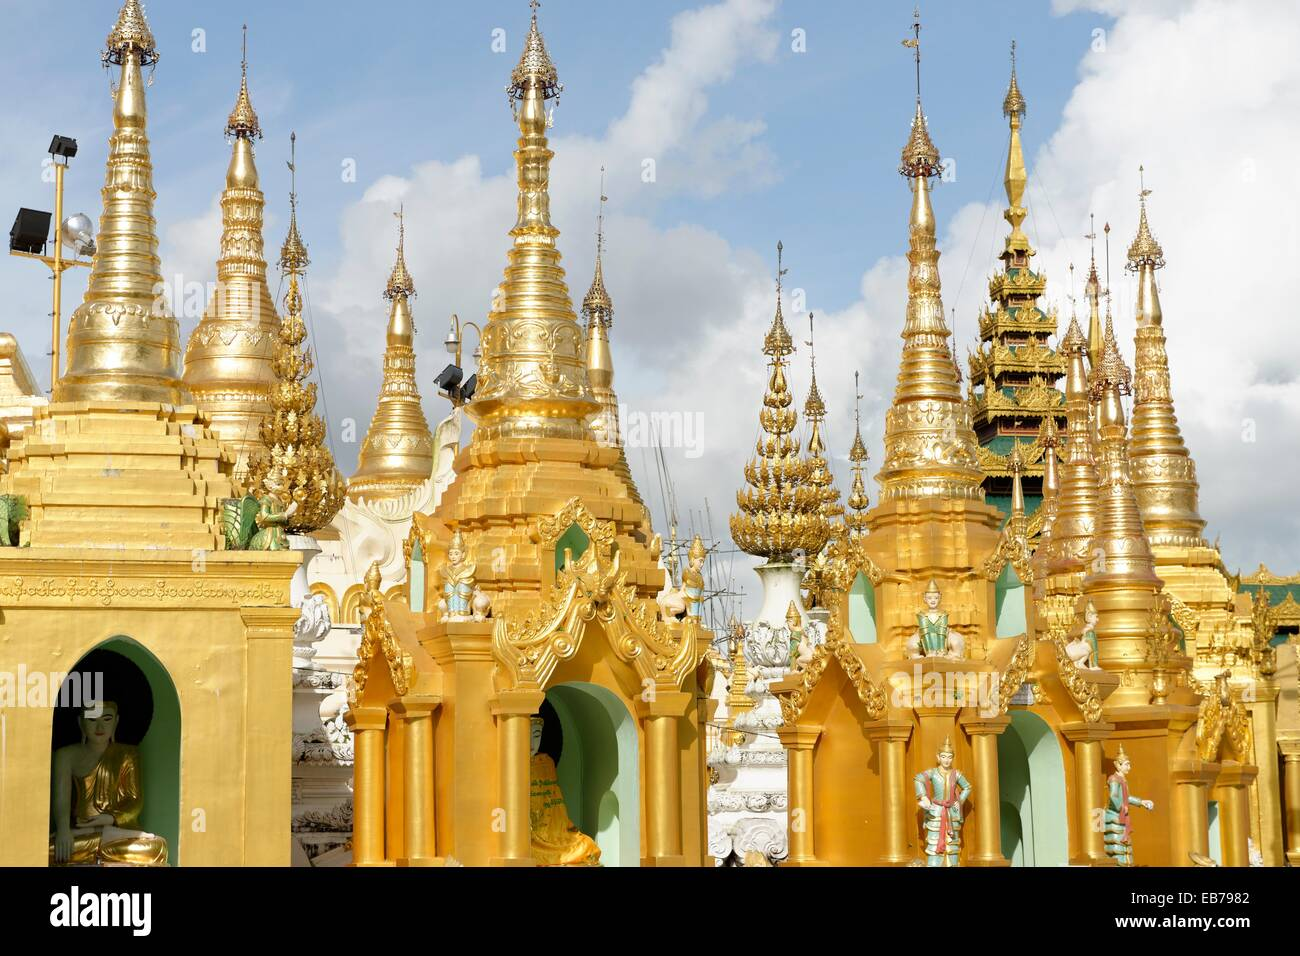 The Shwedagon Pagoda officially titled Shwedagon Zedi Daw also known as the Great Dagon Pagoda and the Golden Pagoda - Stock Image